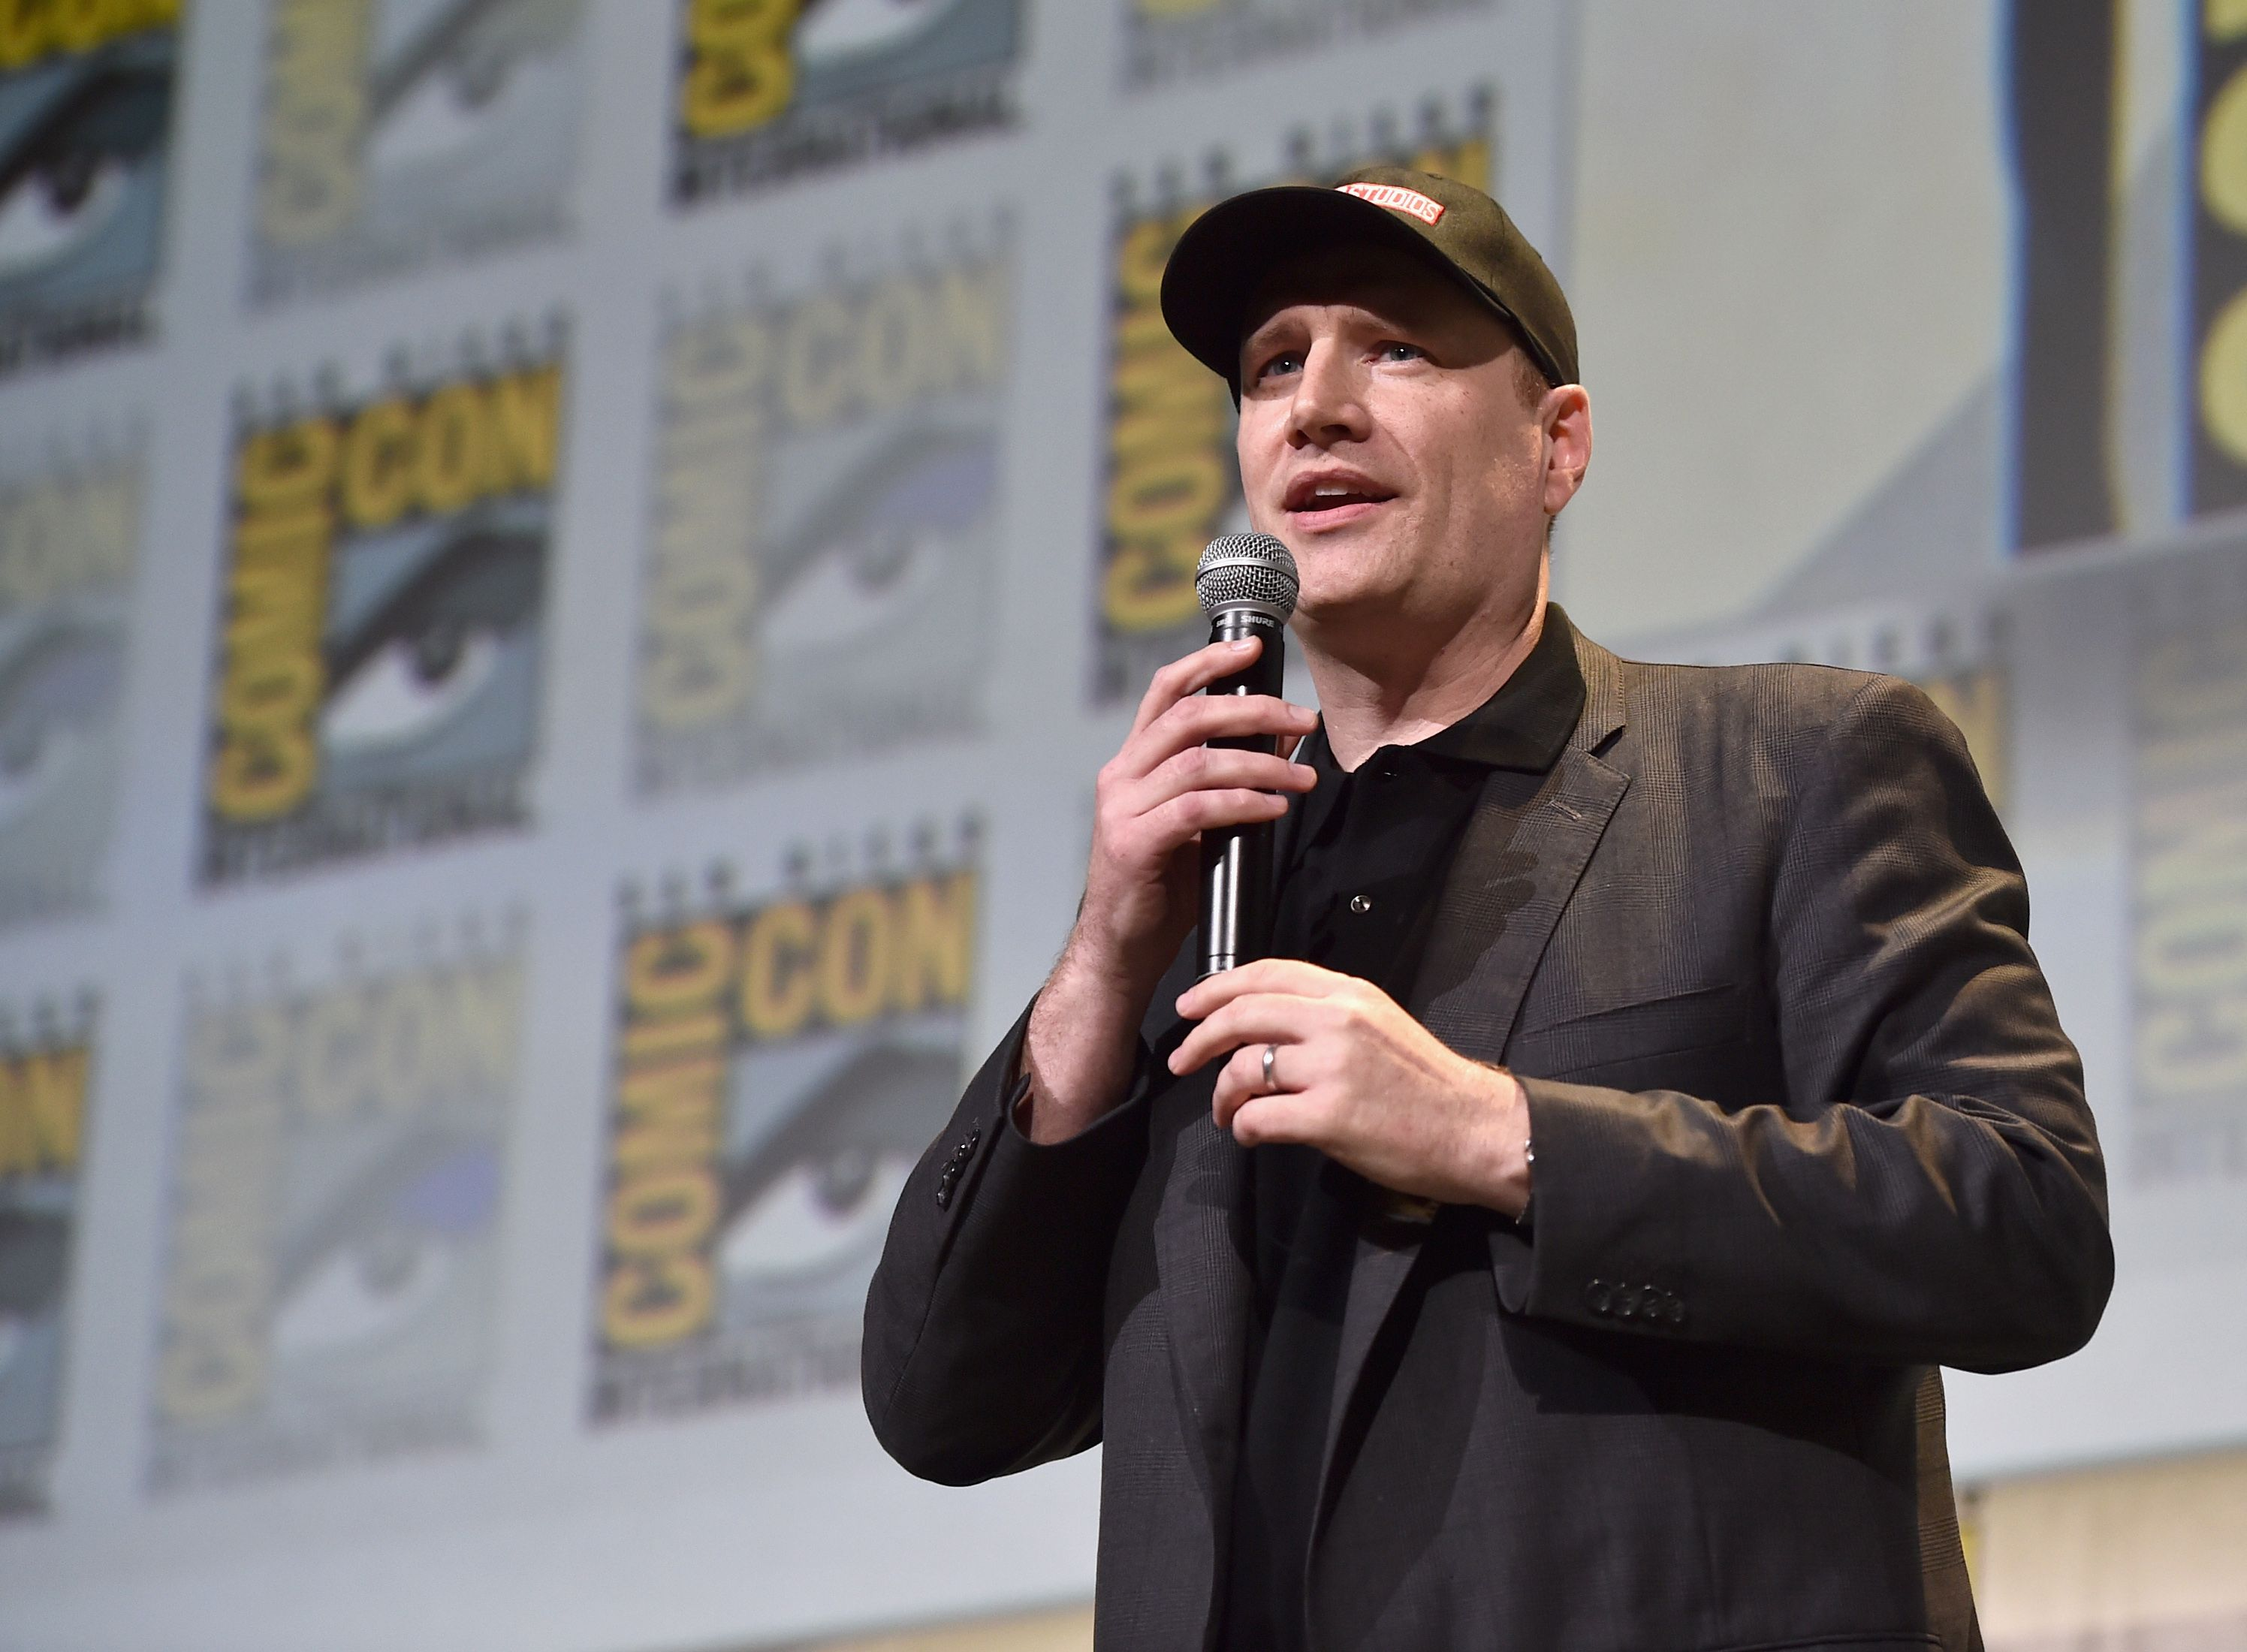 Kevin Feige on 'Captain Marvel', the 'Avengers: Endgame' Title, 'Eternals', Disney+ Content, and More - Collider.com thumbnail